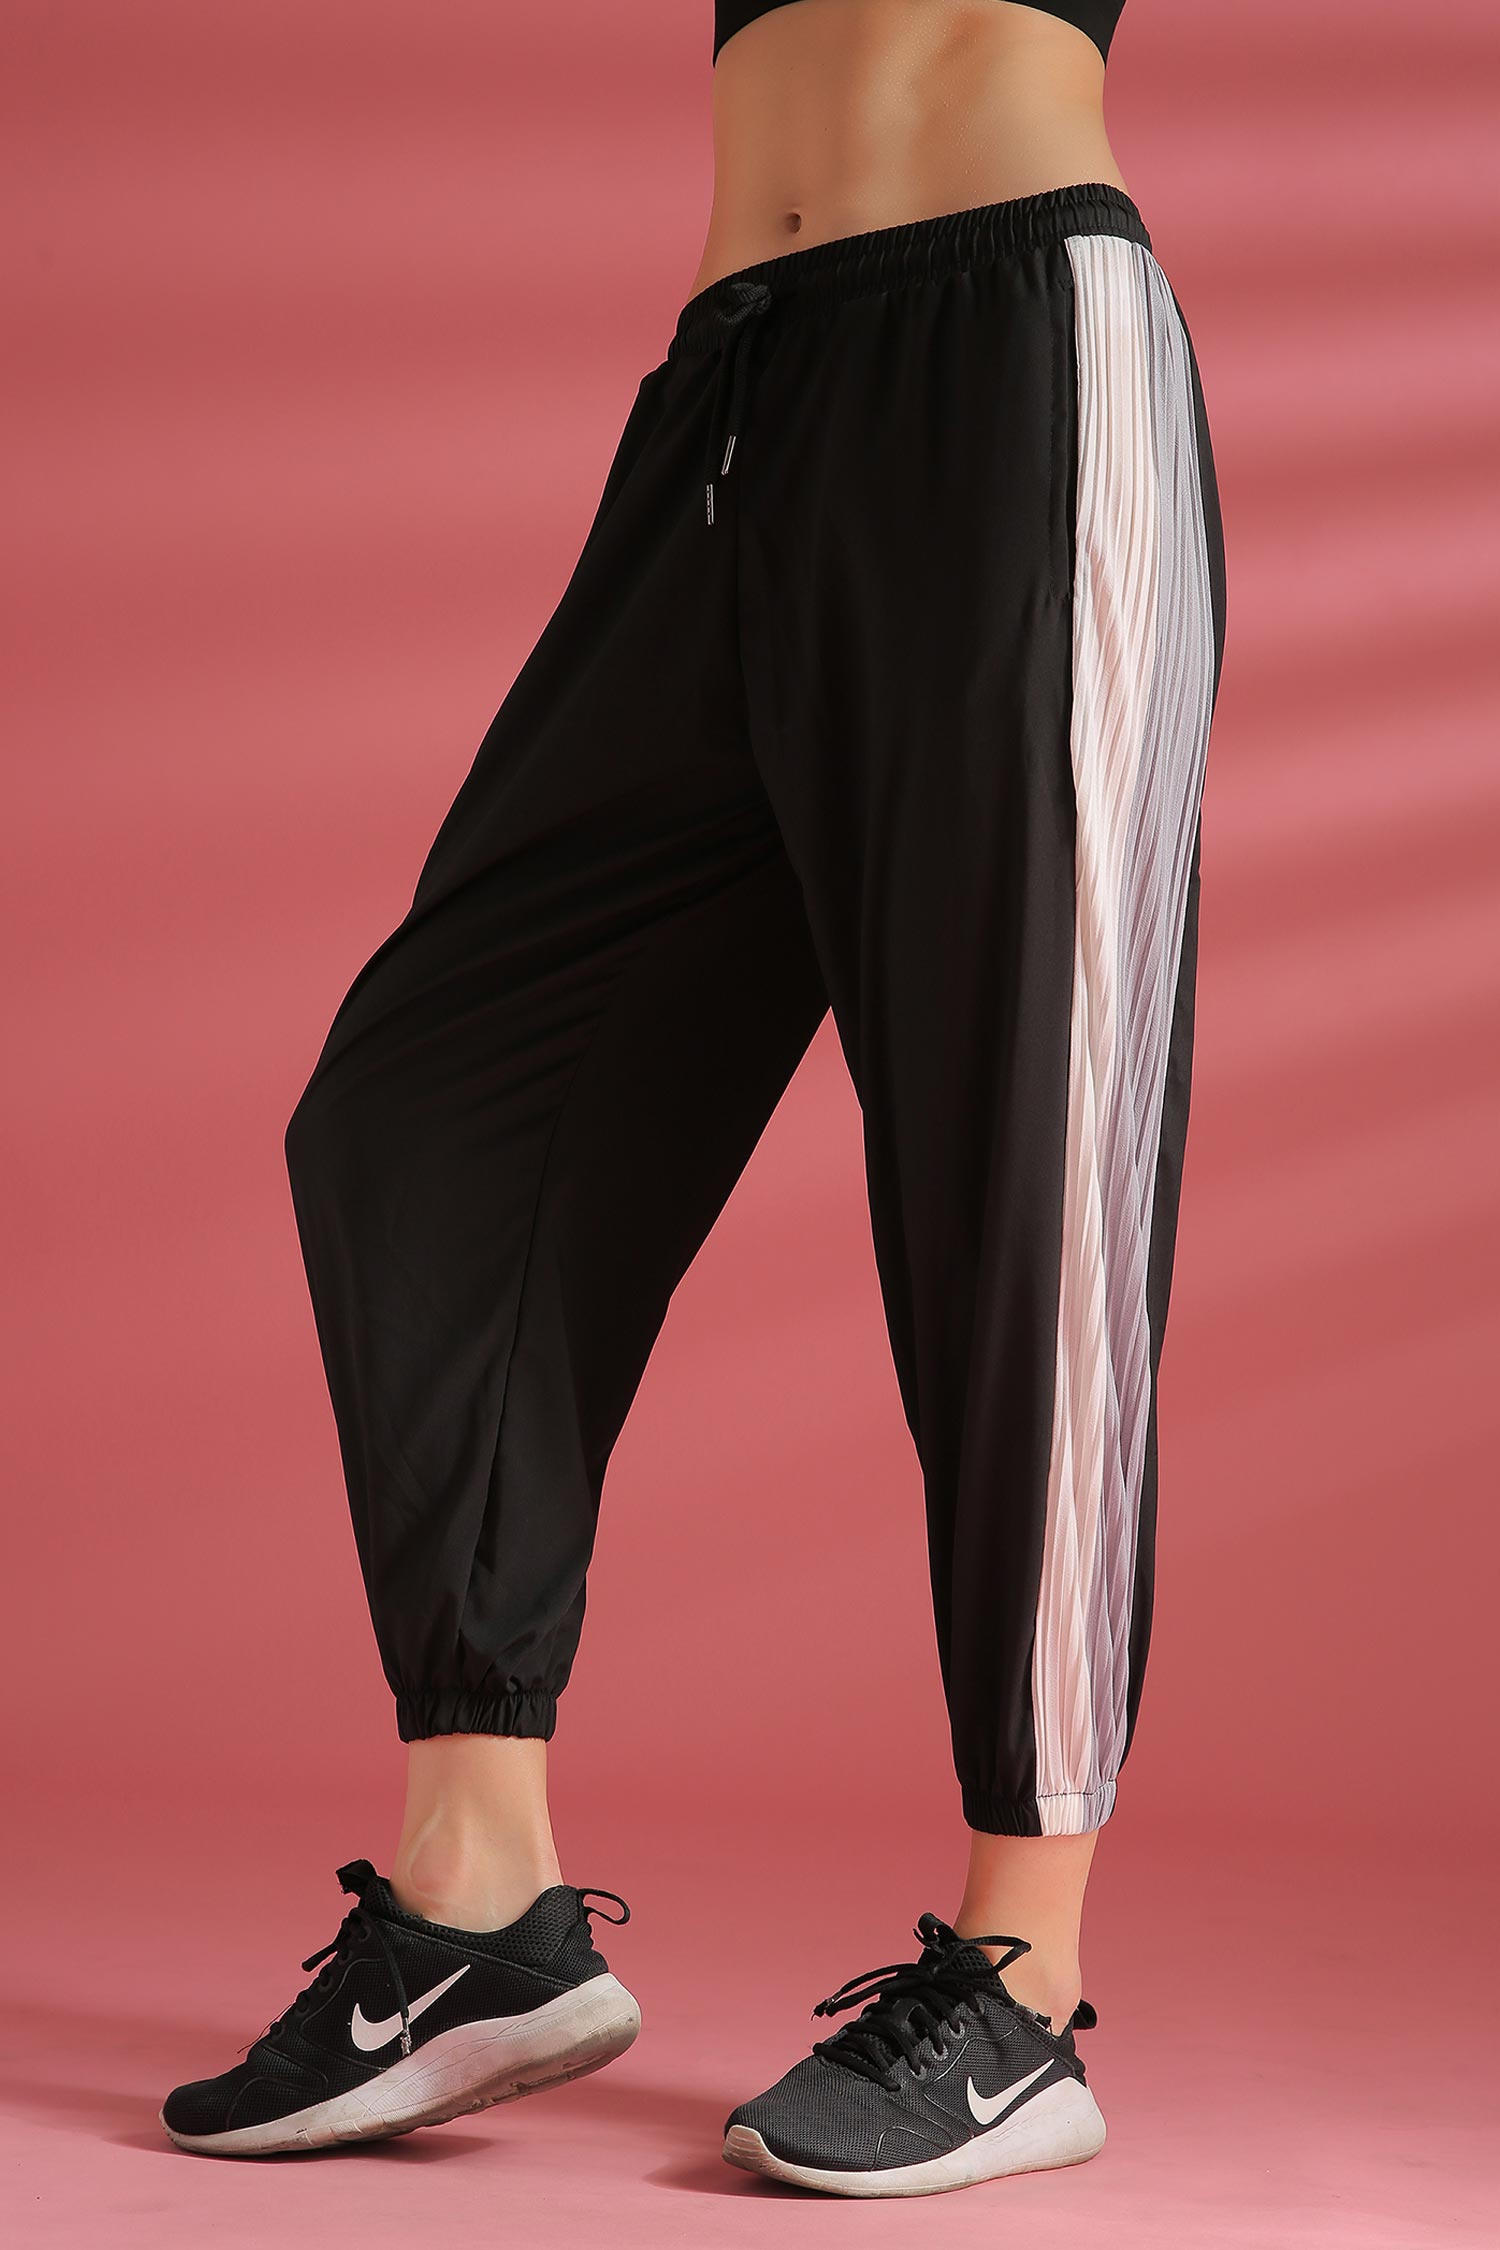 Drawstring Waist Black Striped Sports Pants